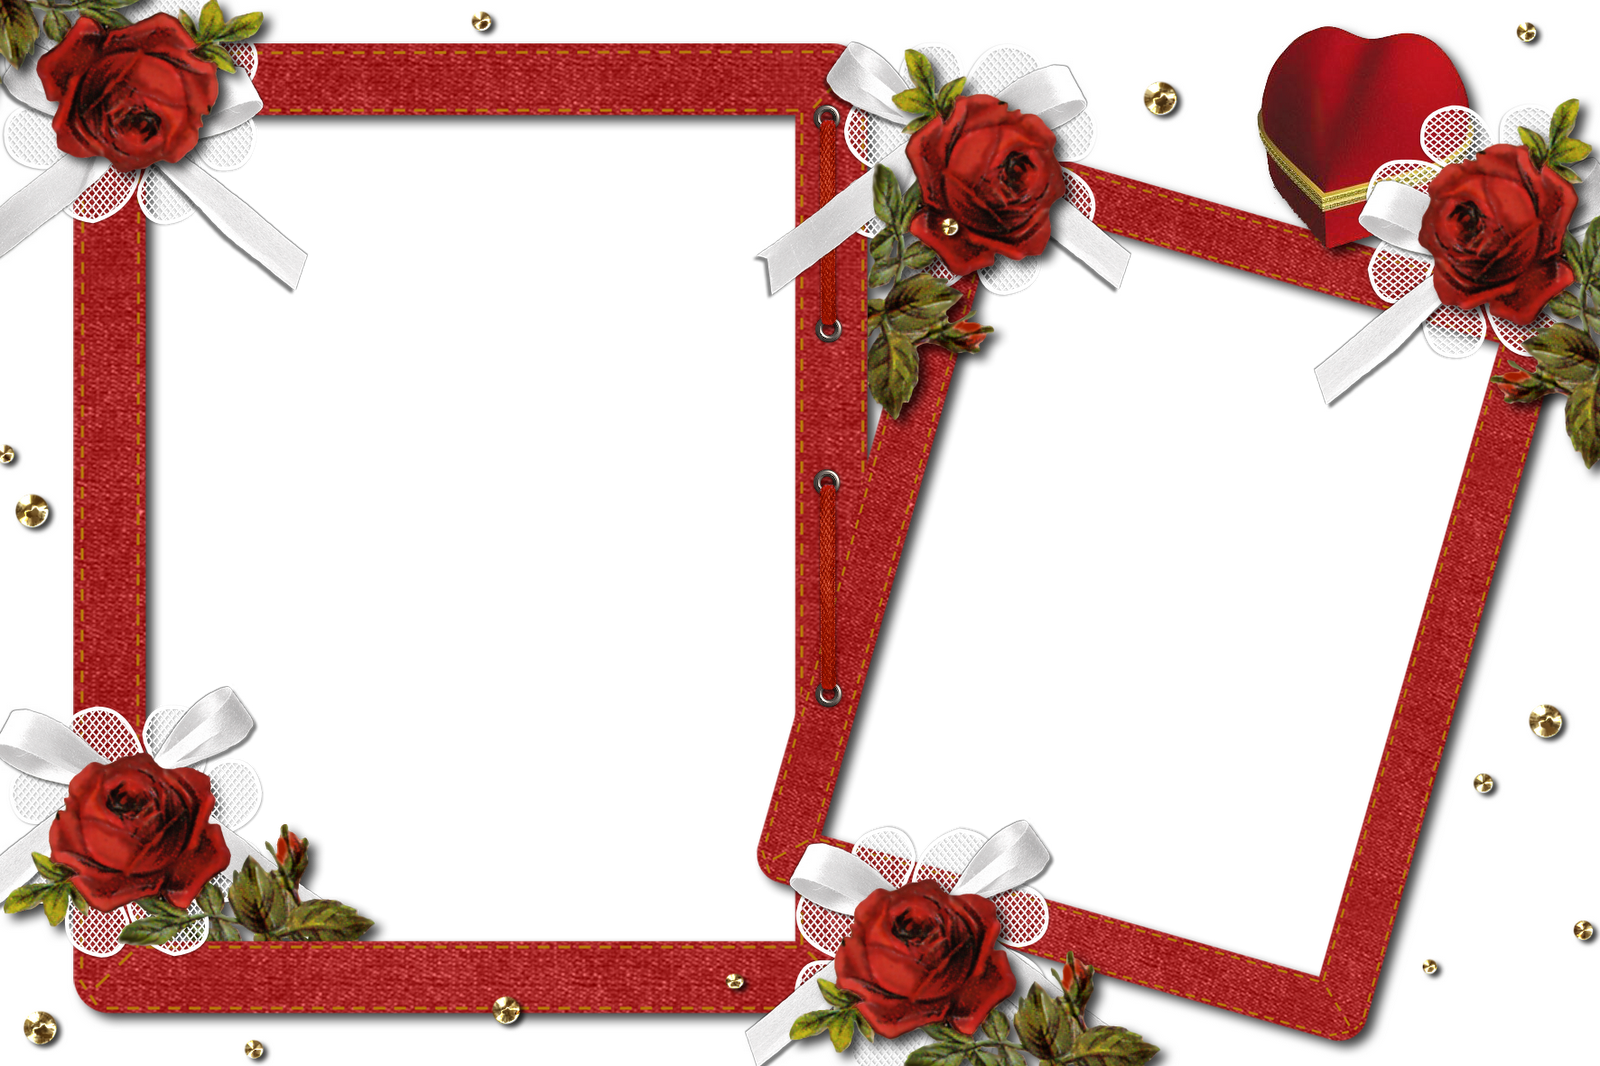 Double frame clipart png black and white library Double Romantic Transparent Photo Frame with Roses | Gallery ... png black and white library